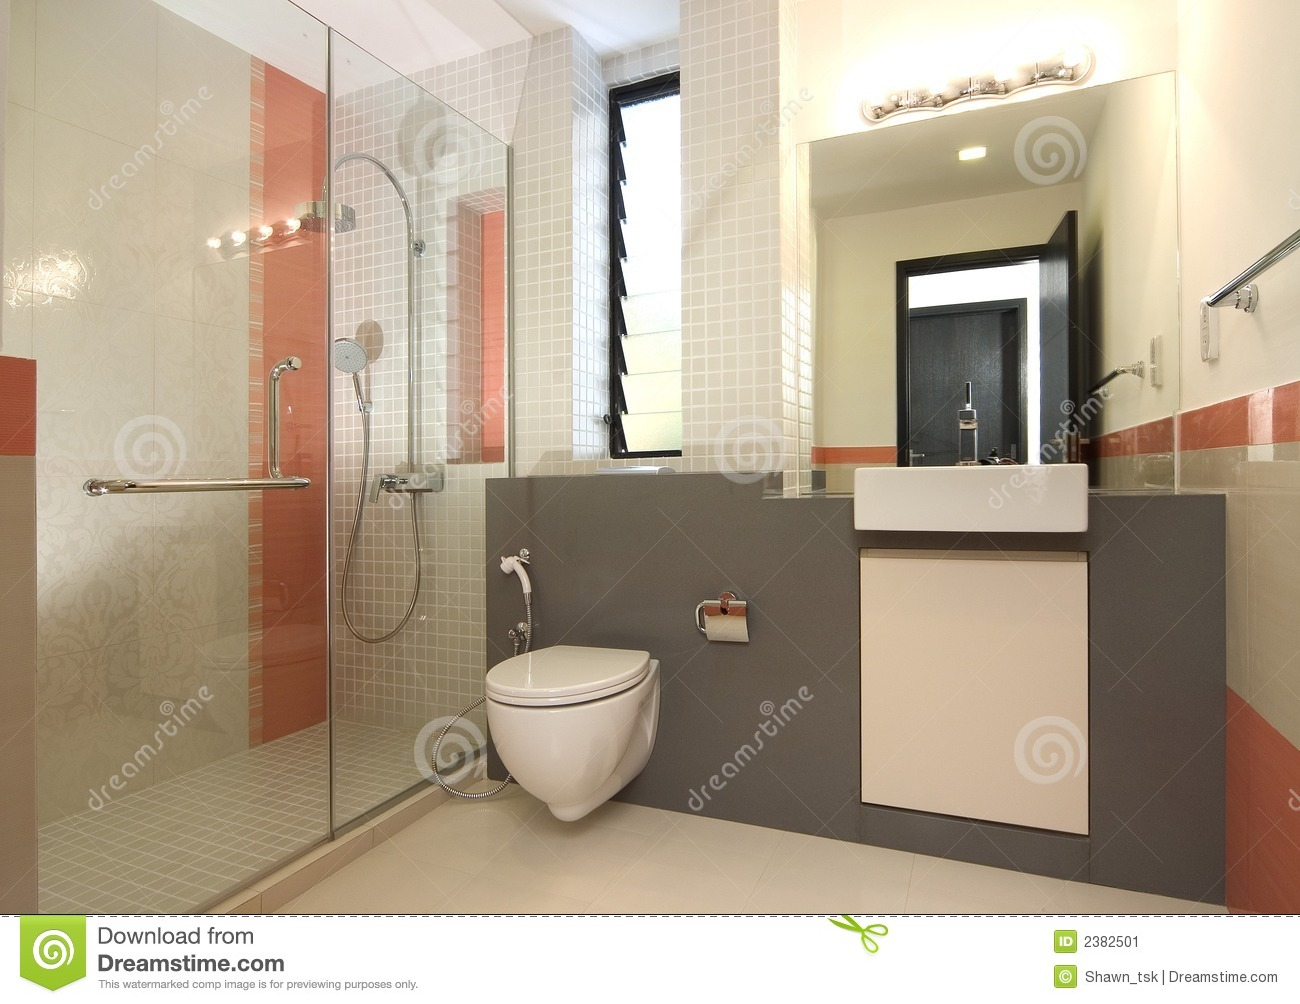 Interior Design Bathroom Stock Image Image Of Light 2382501